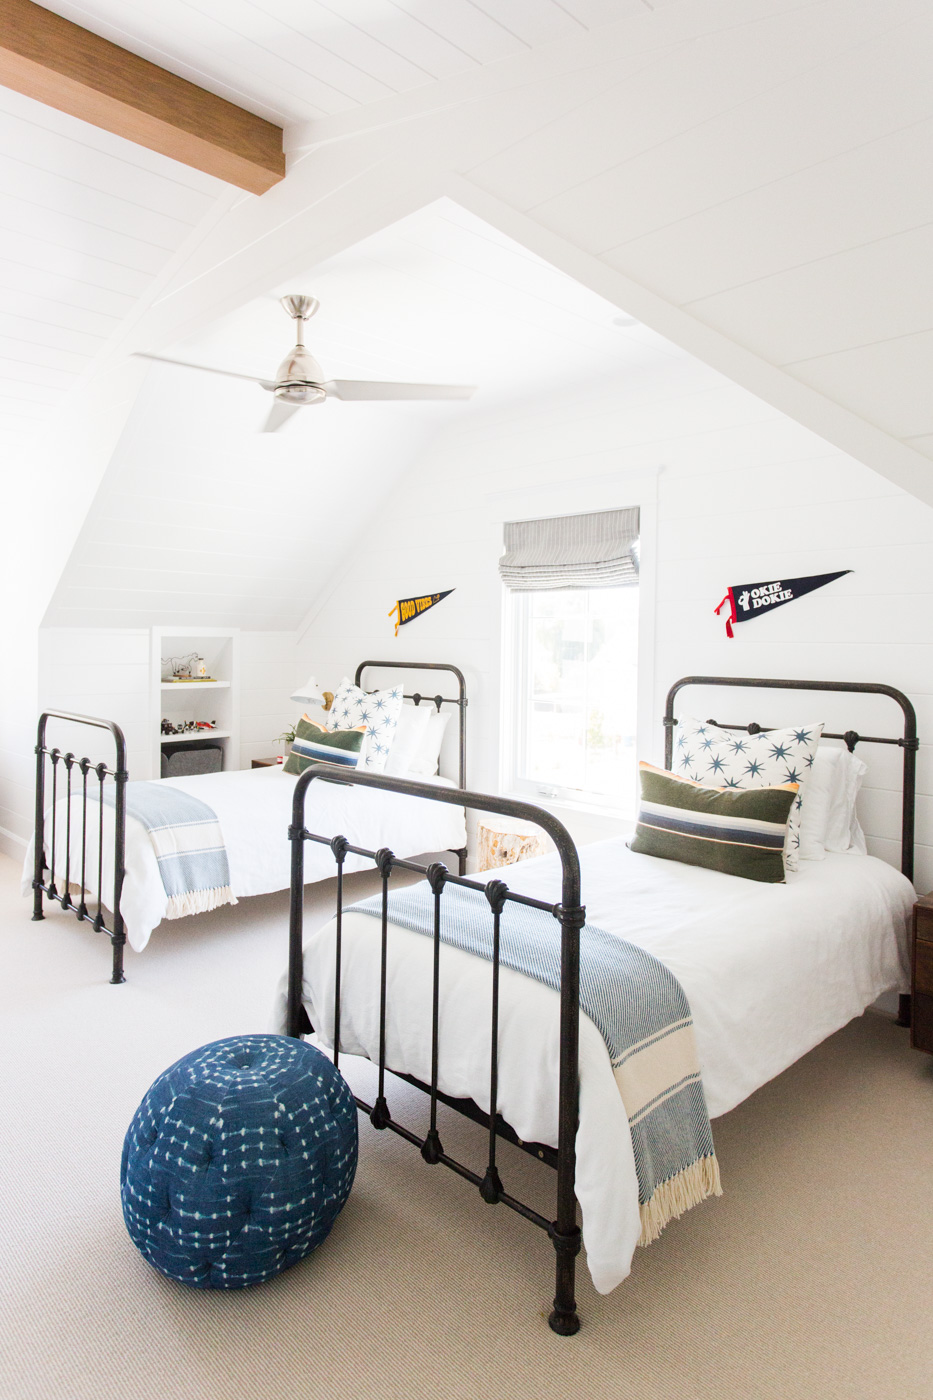 Boys' room with twin iron beds || Studio McGee